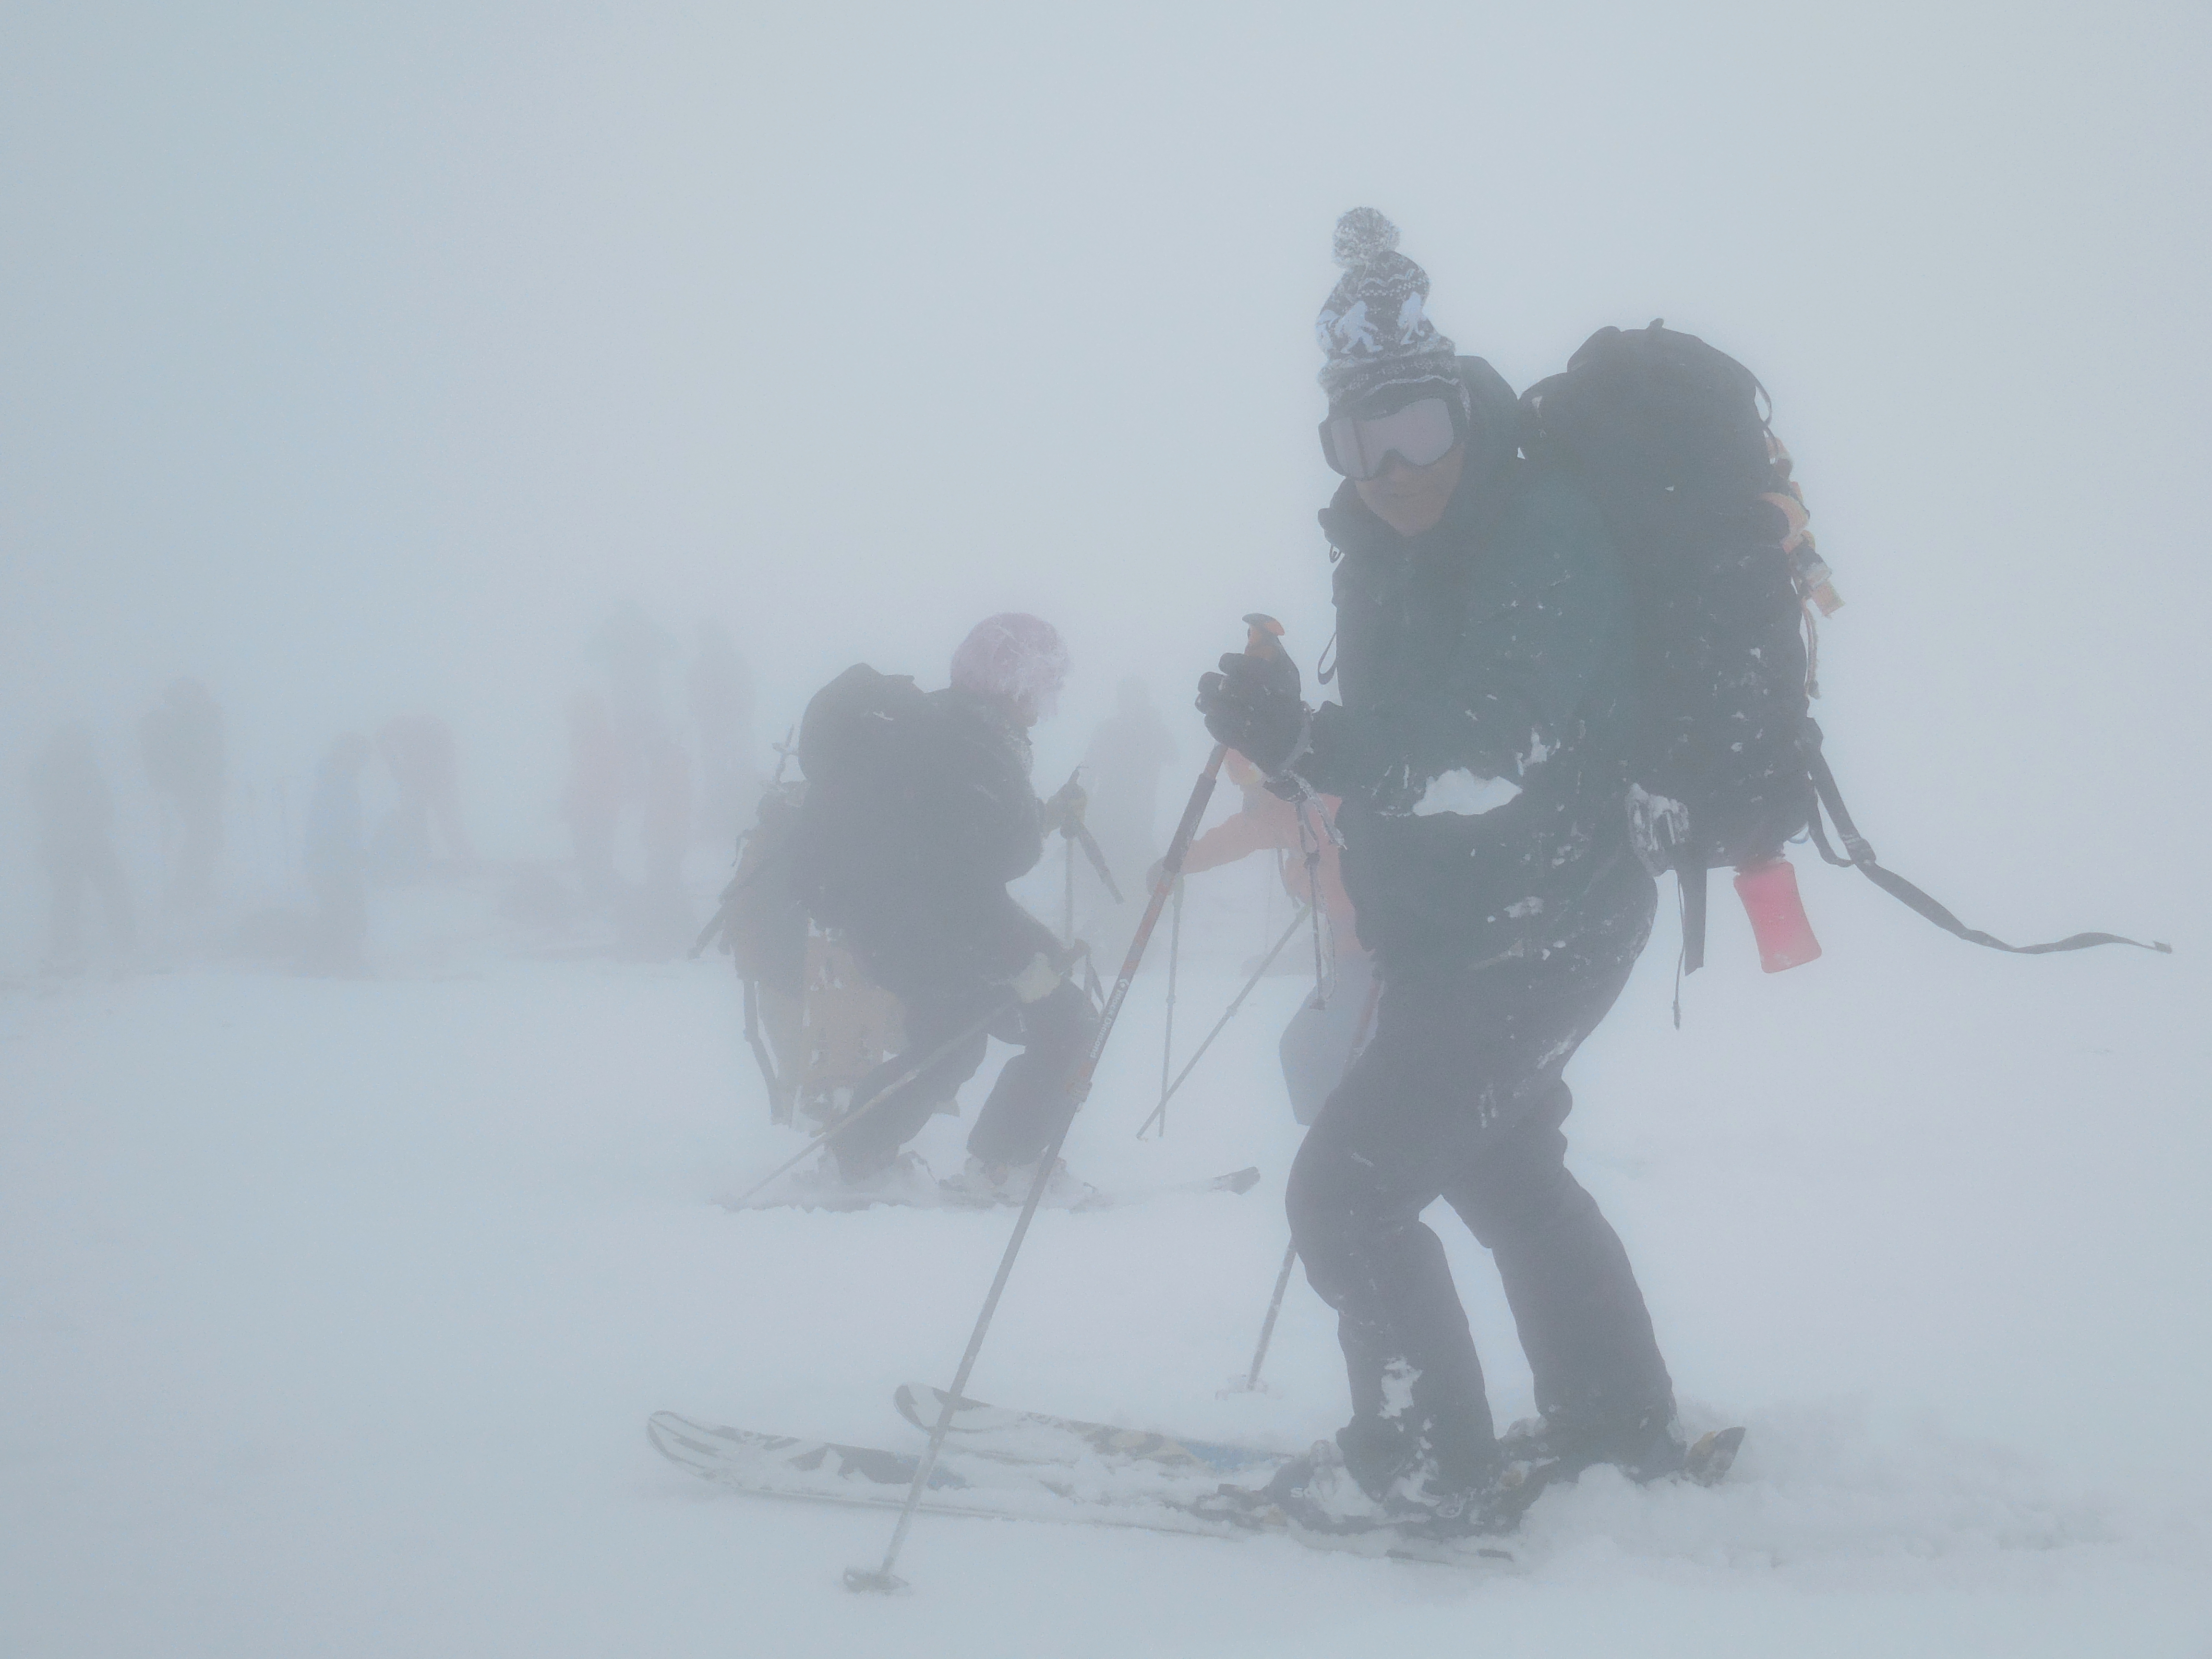 Summit visibility with Peter. photo: miles clark/snowbrains